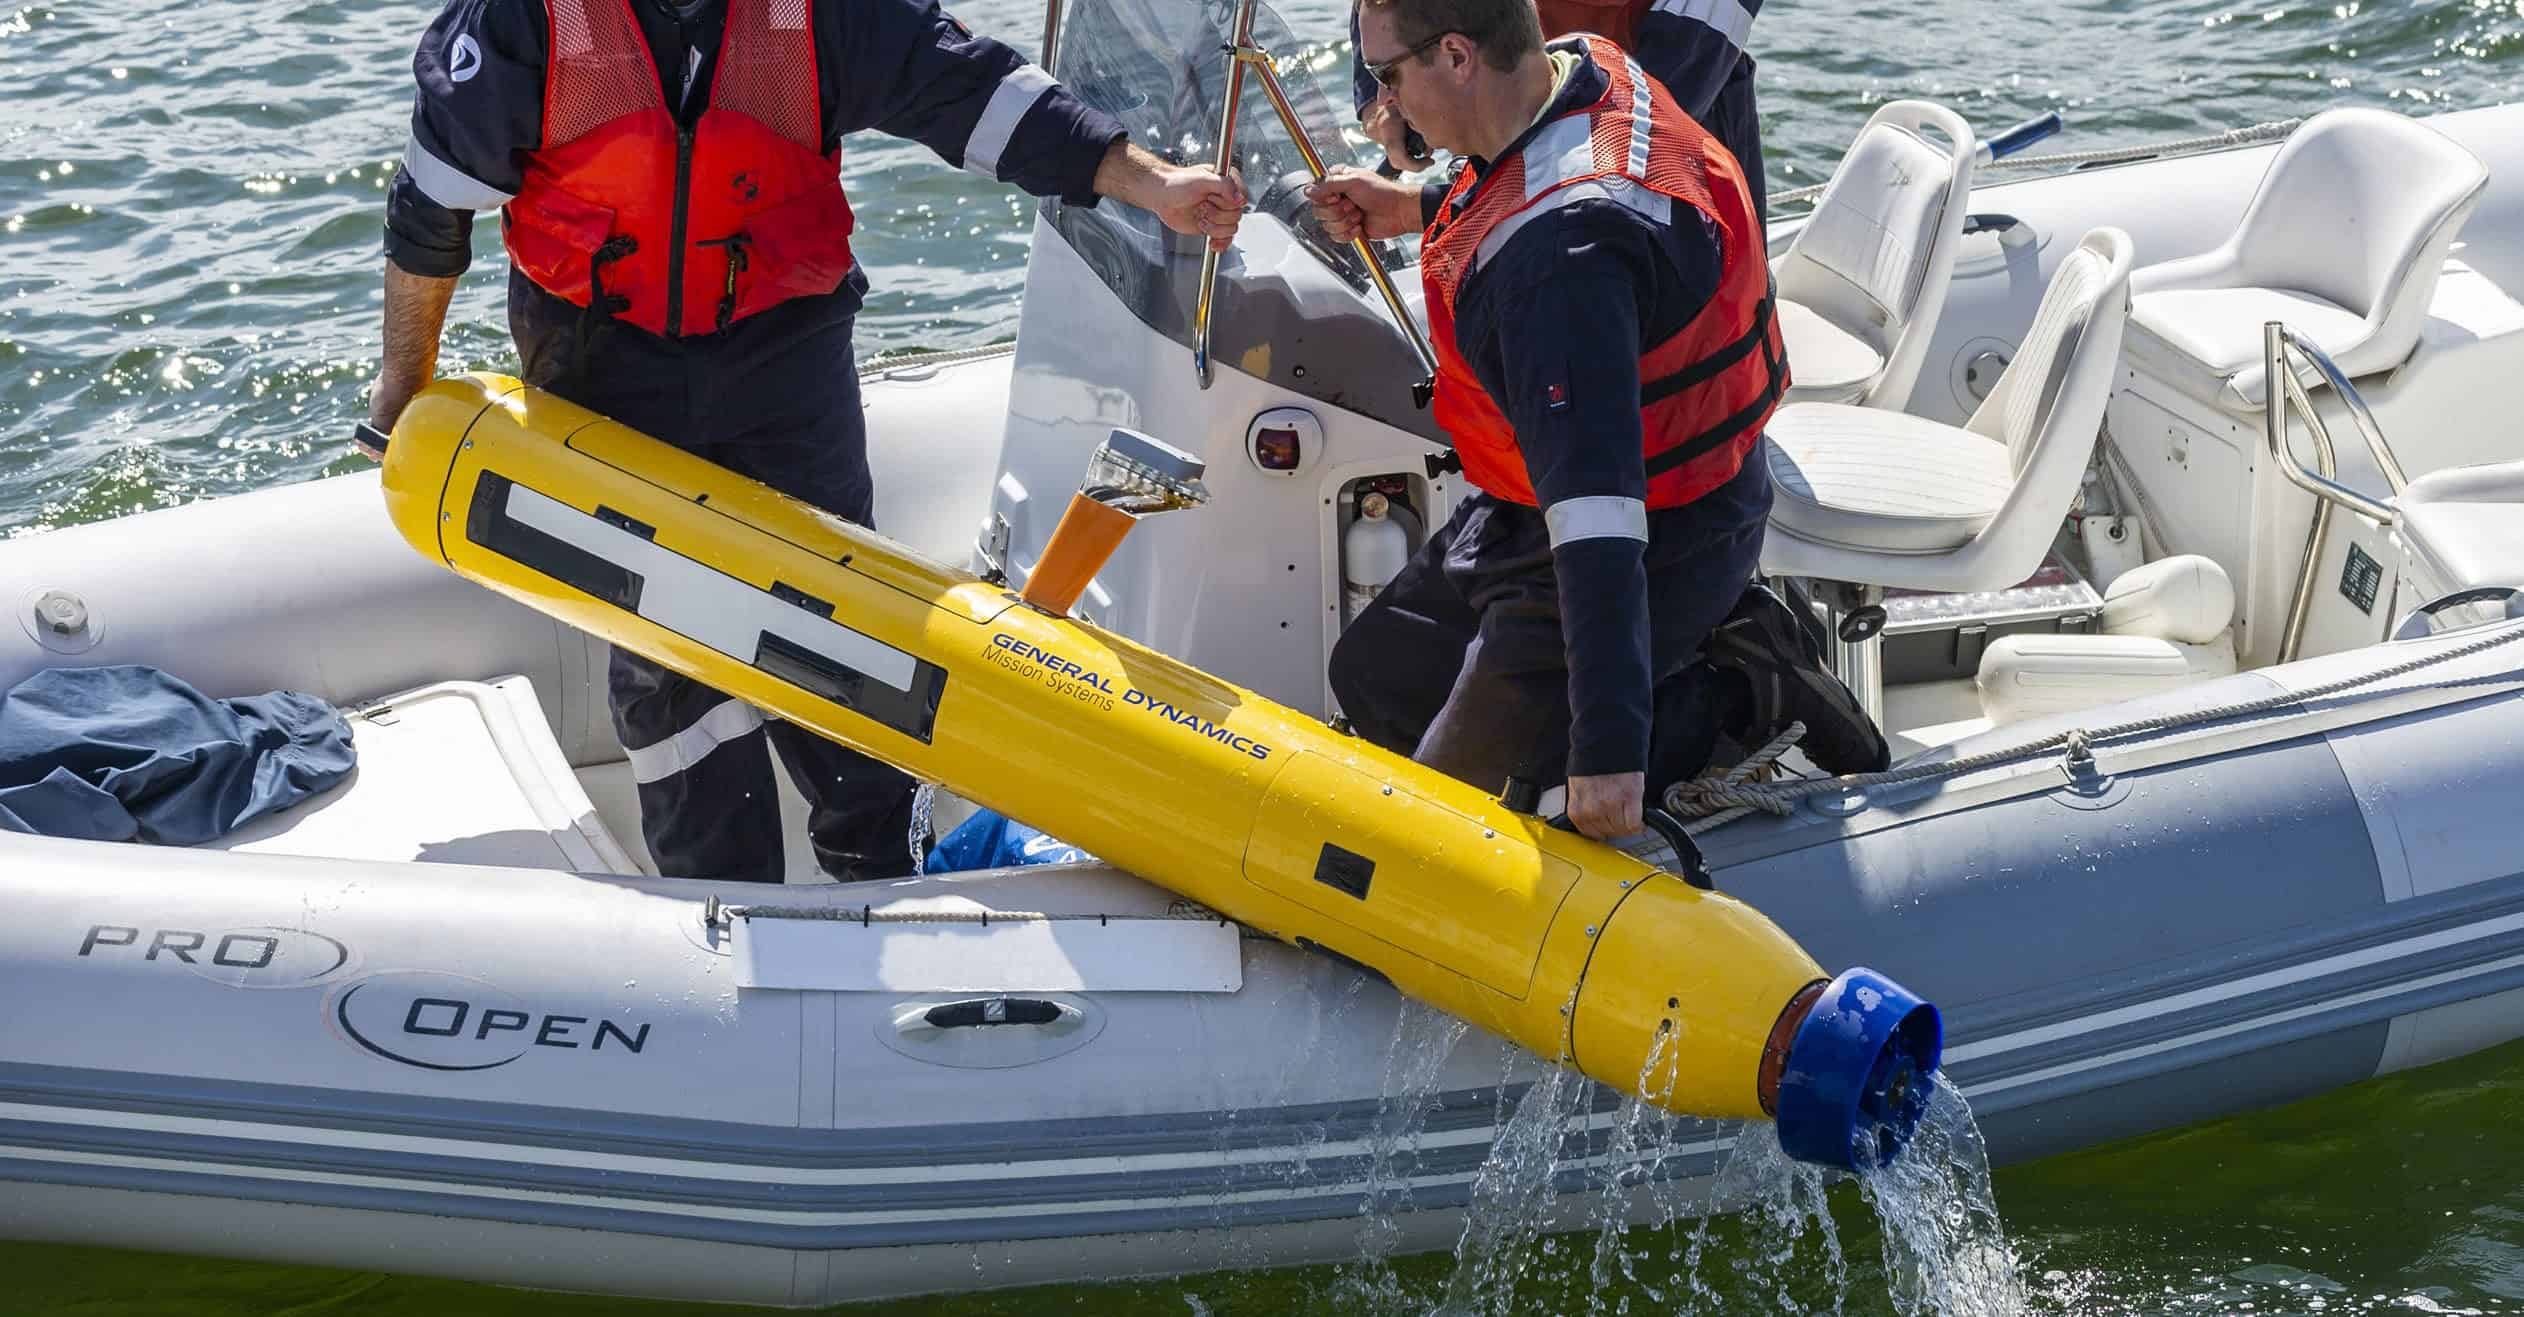 Commercial Vehicle Definition >> GDMS Launches Redesigned Bluefin-9 AUV | Unmanned Systems Technology